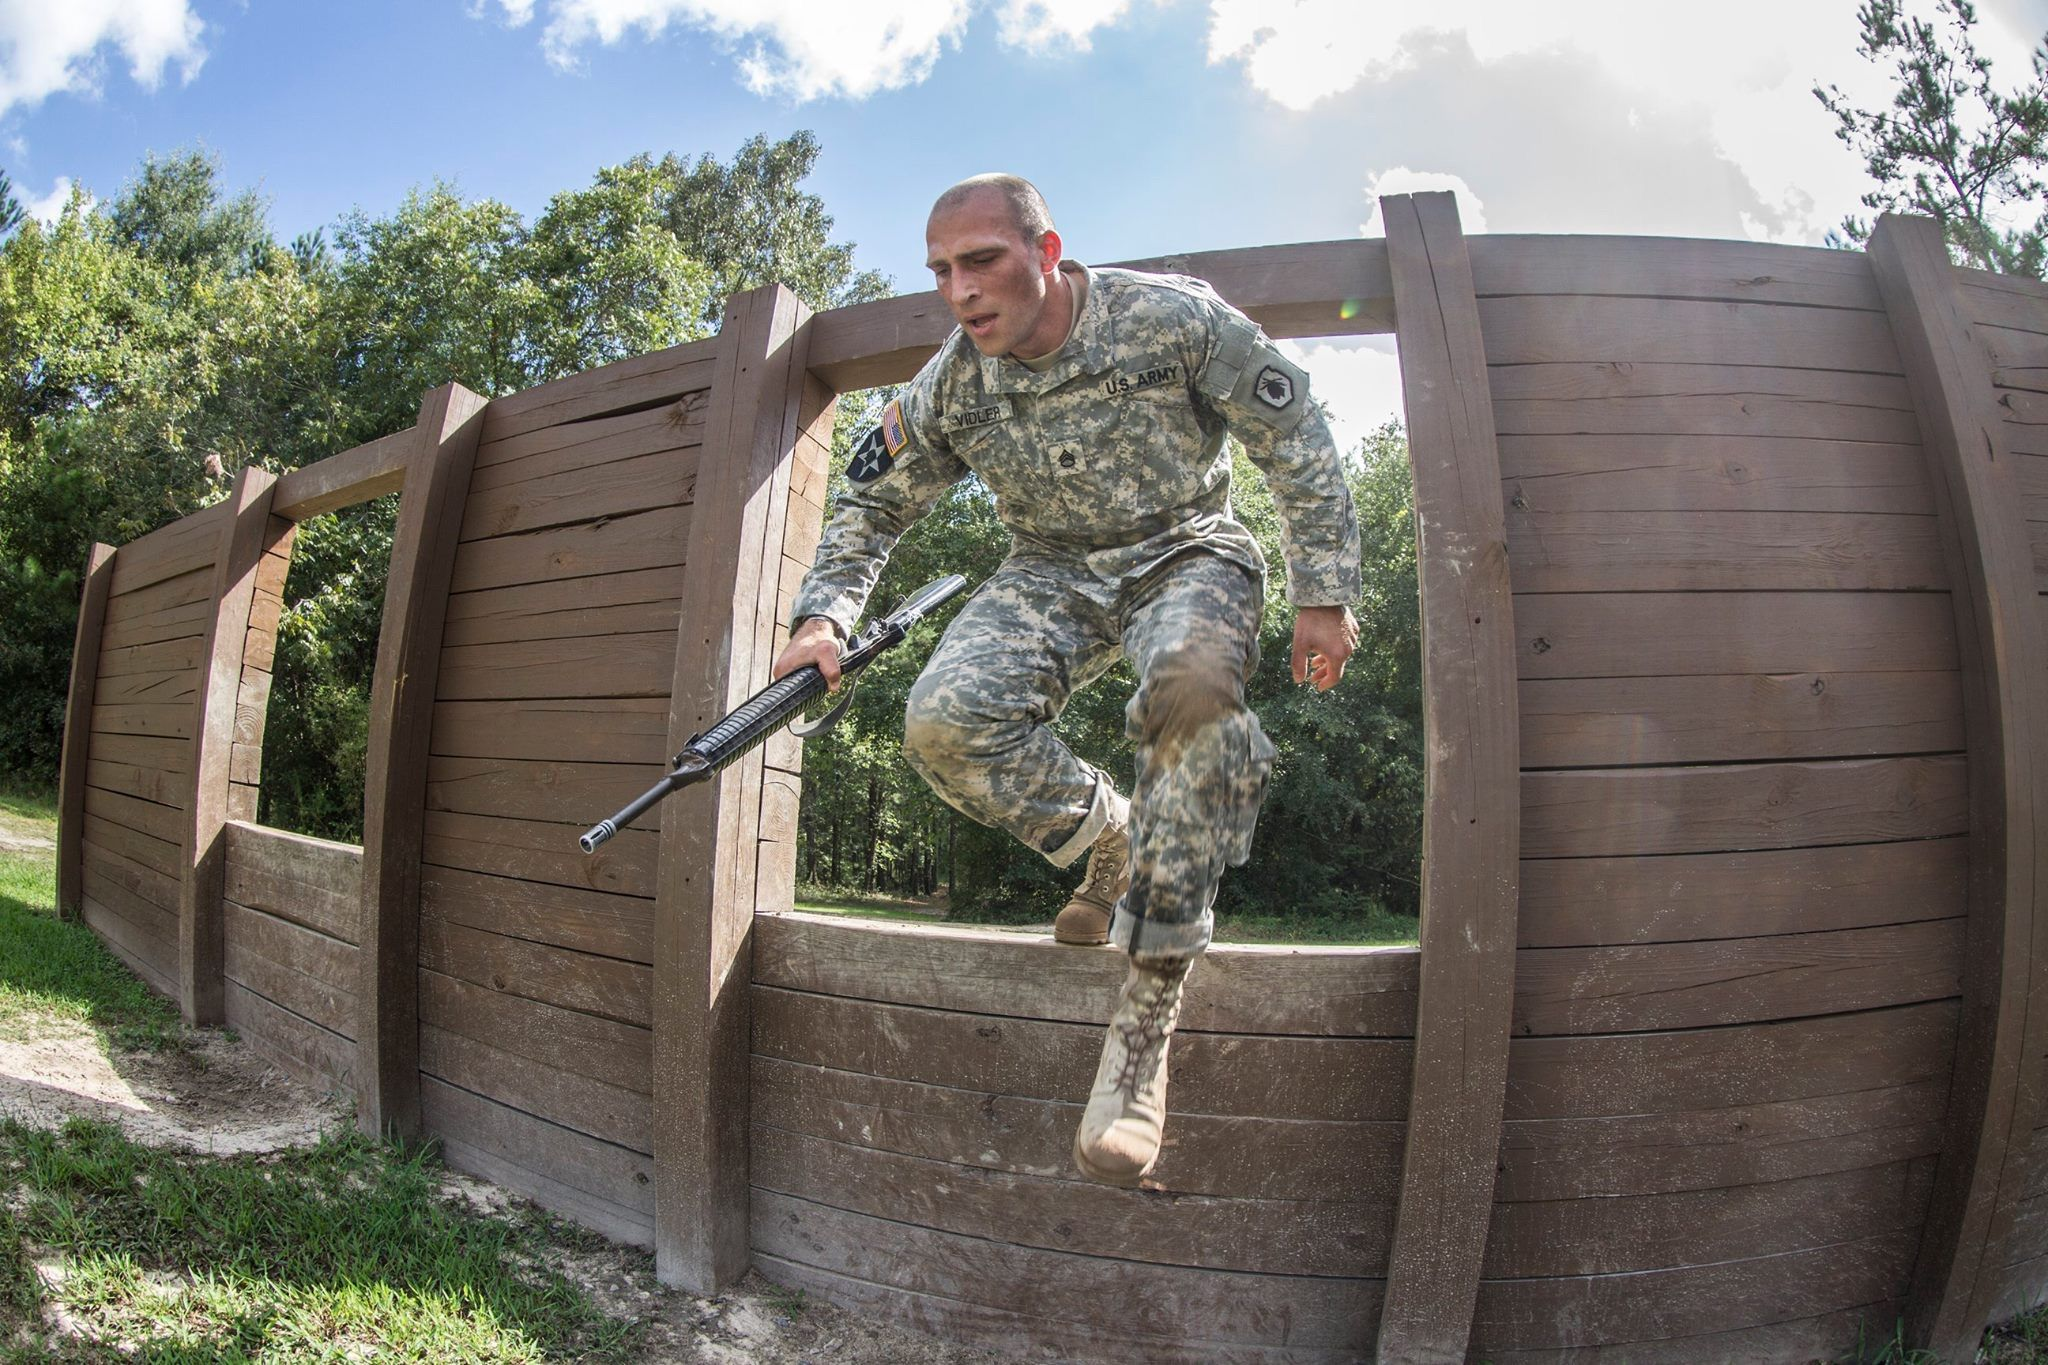 A U.S. Army Reserve negotiates a window obstacle in the Fit to Win obstacle course during the U.S. Army Training and Doctrine Command Drill Sergeant of Year competition at Fort Jackson, S.C., Sep 9 , 2015. #USArmy photo by Sgt. 1st Class Brian Hamilton